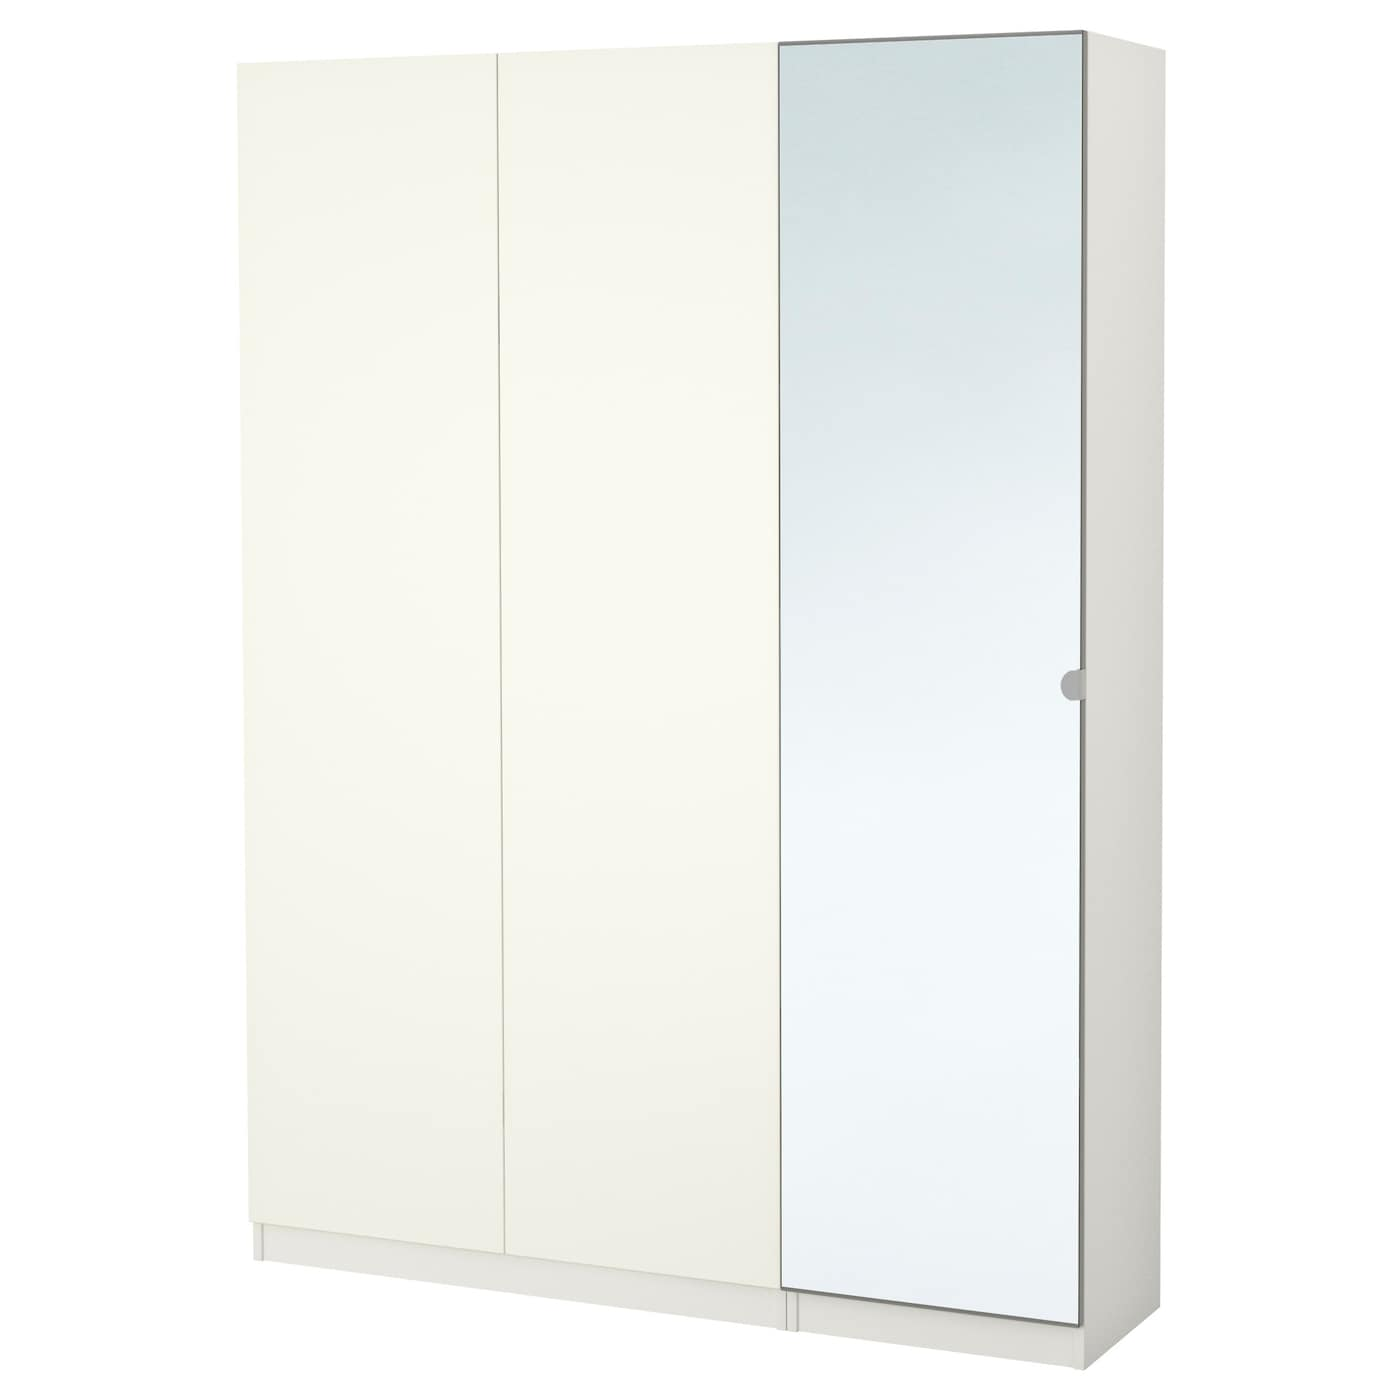 pax armoire penderie blanc tanem vikedal 150x38x201 cm ikea. Black Bedroom Furniture Sets. Home Design Ideas